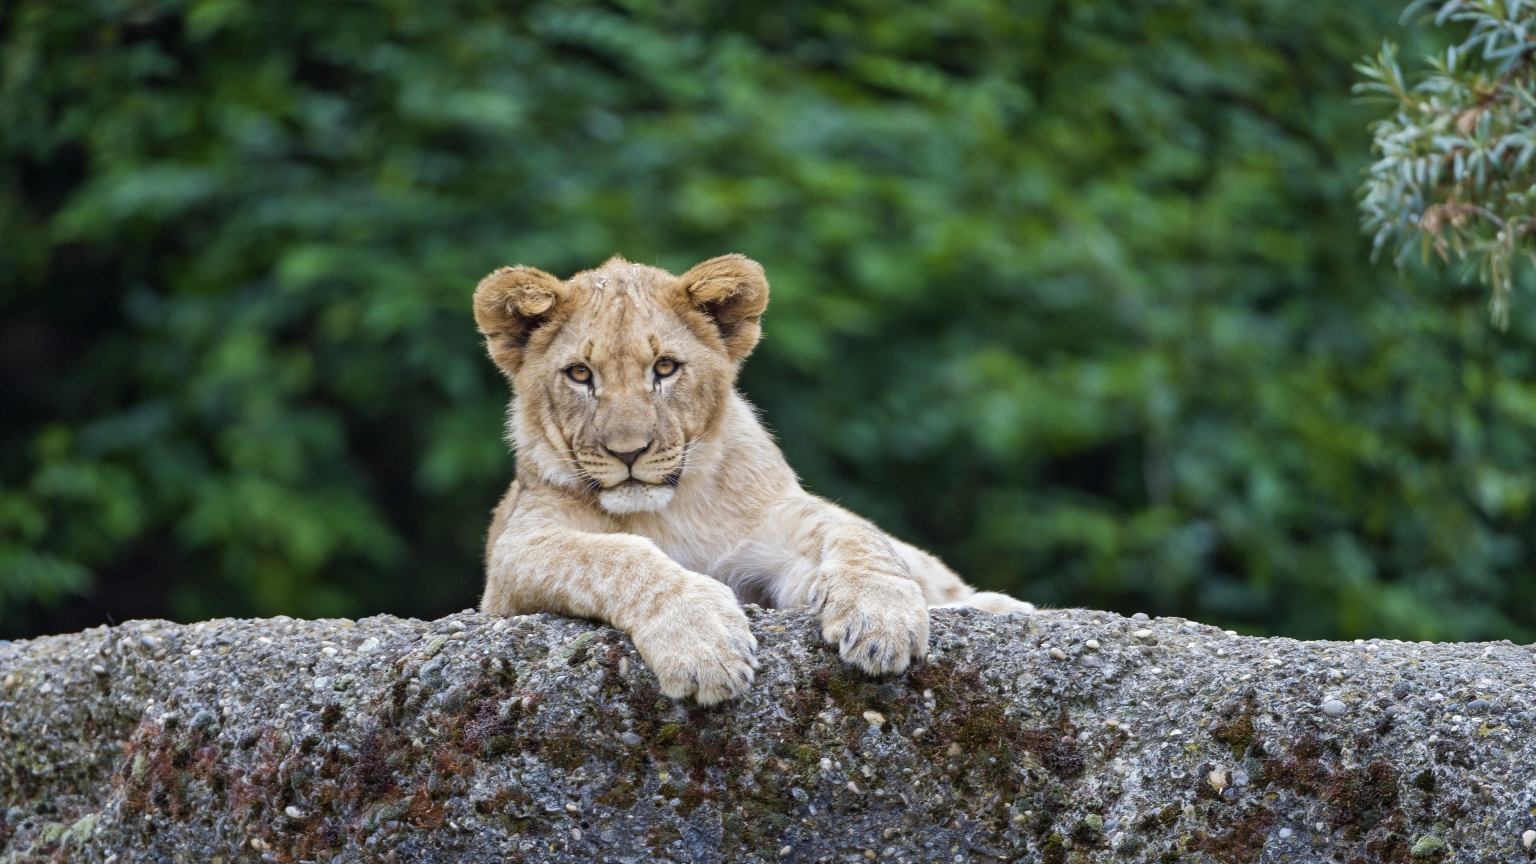 Young Cute Lion for 1536 x 864 HDTV resolution